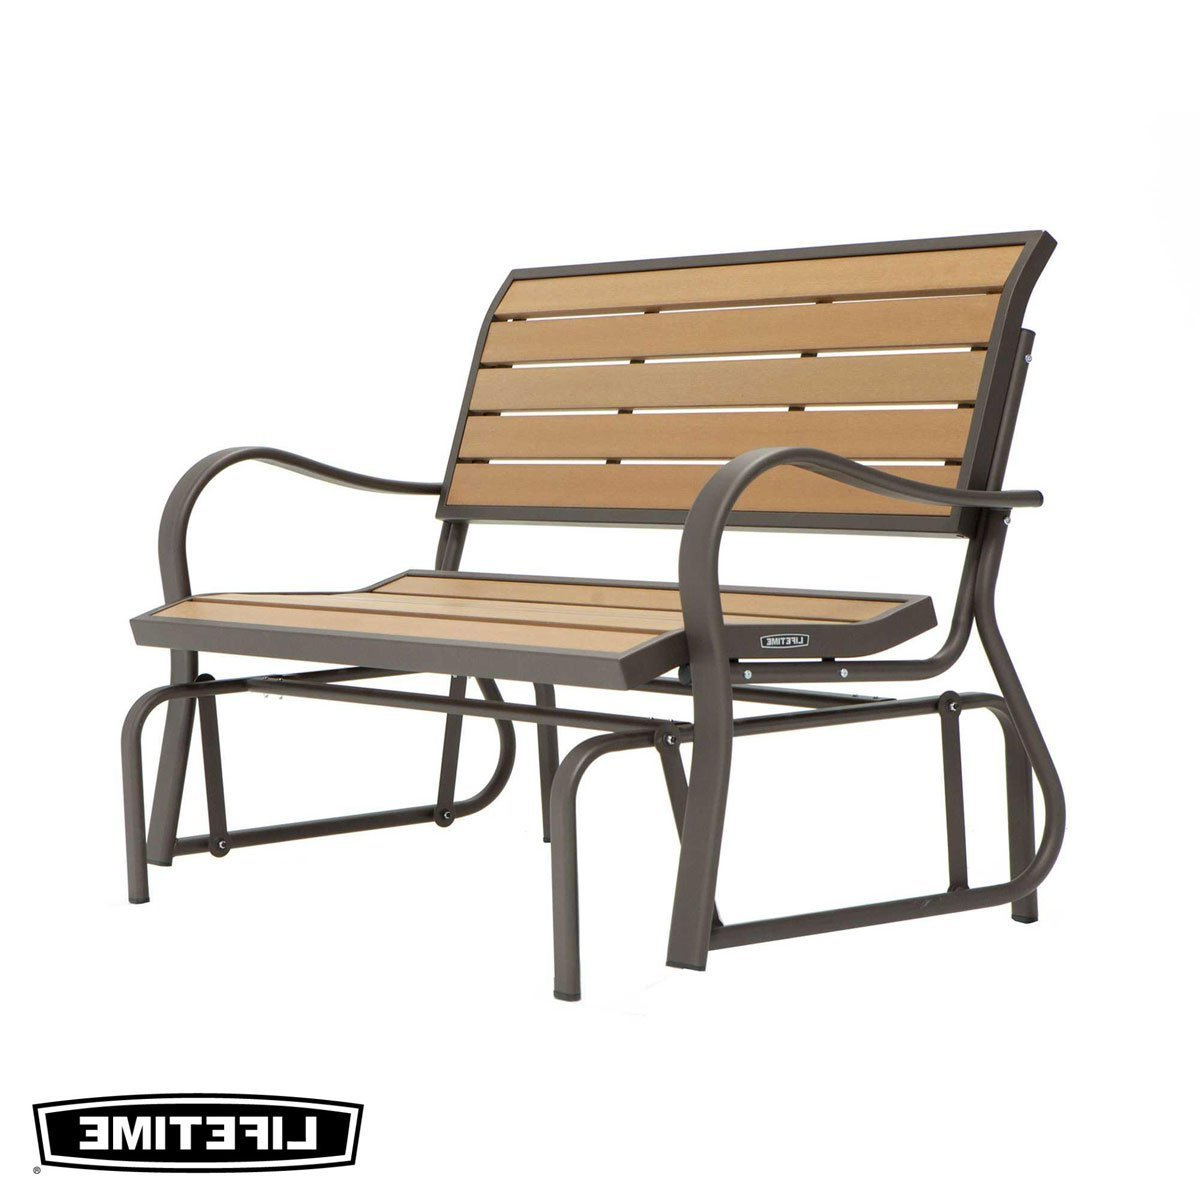 Garden Furniture & Accessories Intended For Well Known Iron Grove Slatted Glider Benches (View 23 of 30)